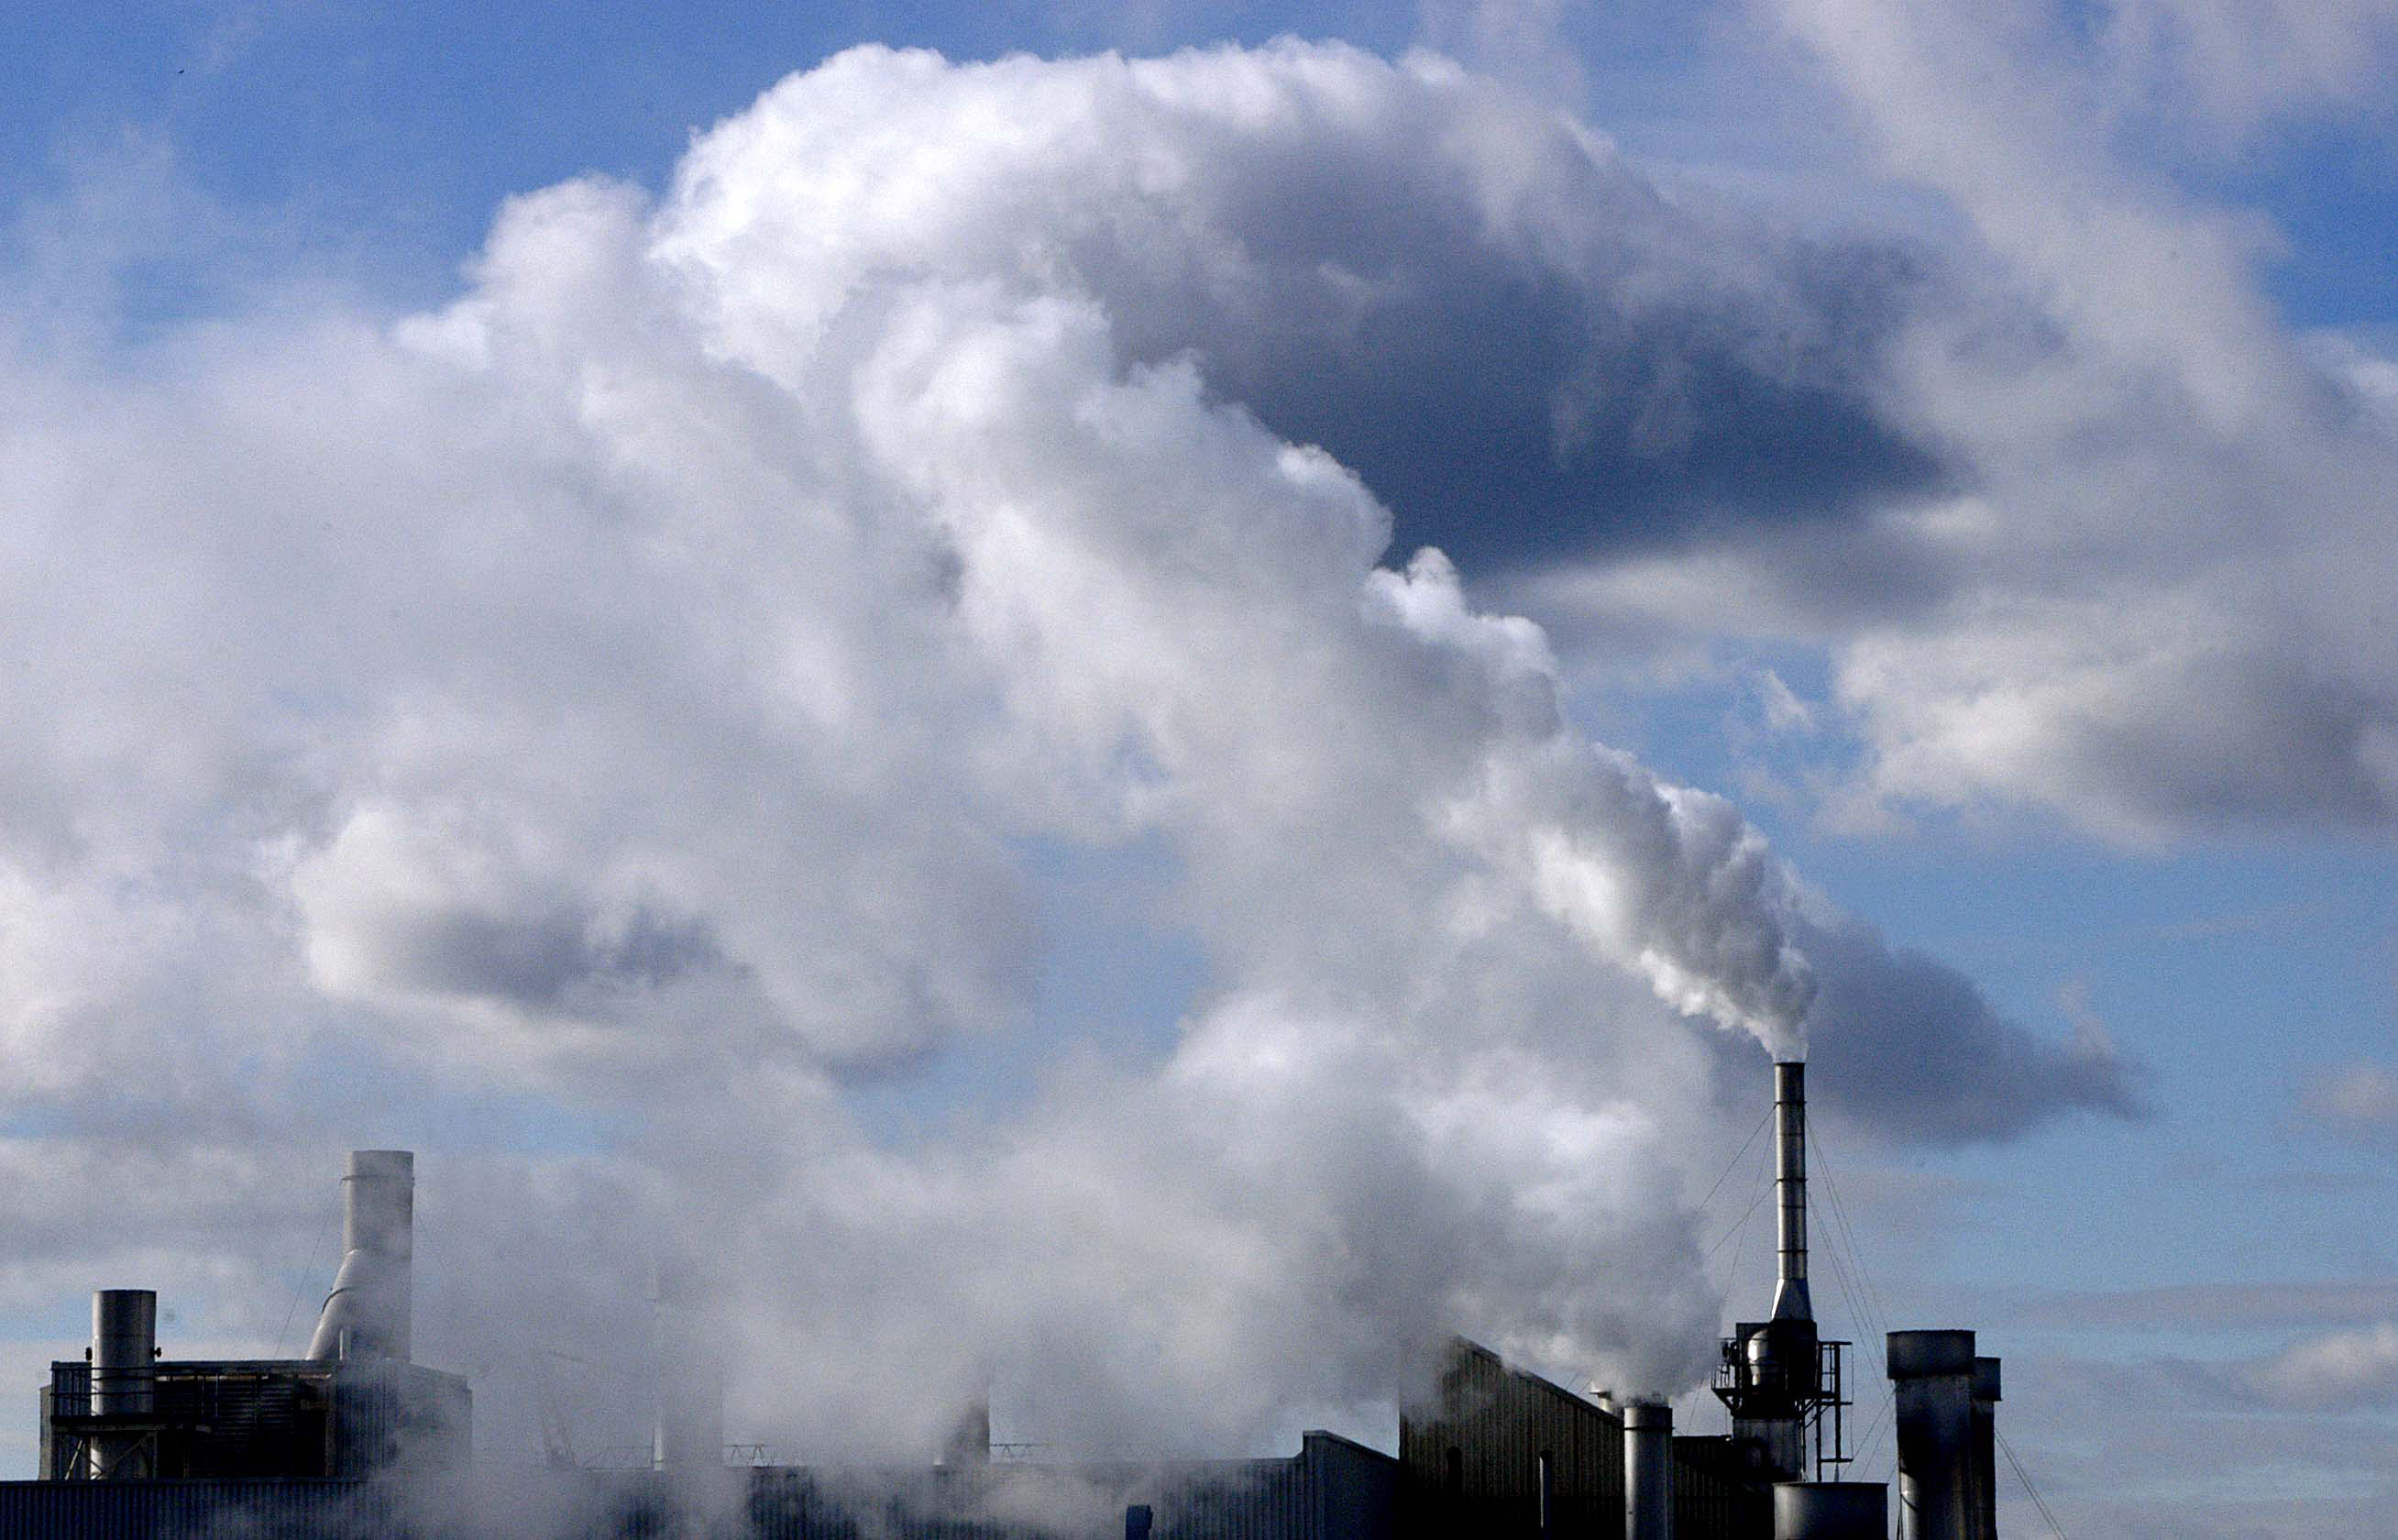 ENVIRONMENT-AIR POLLUTION